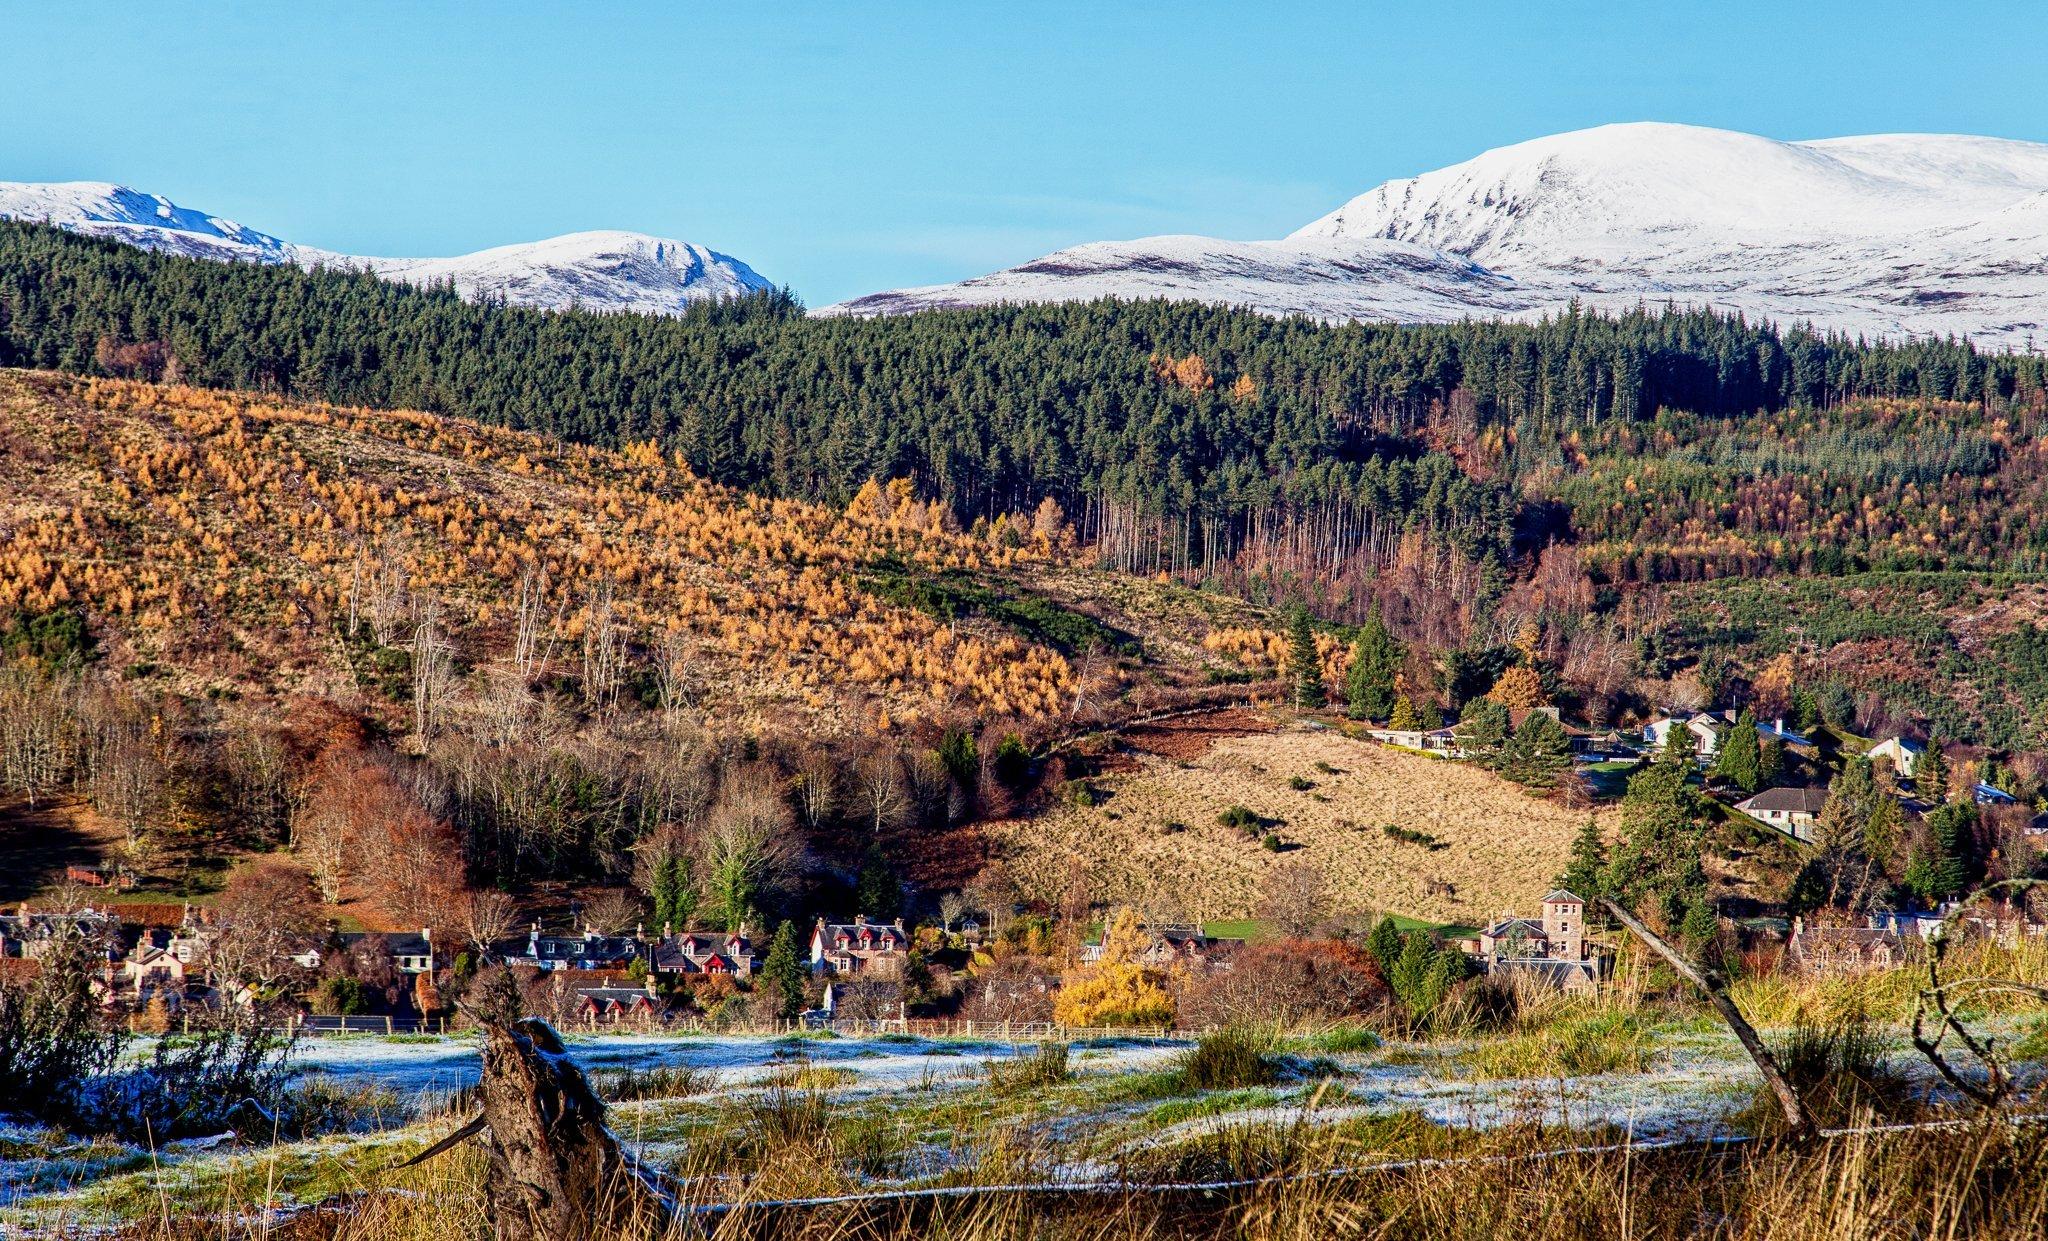 View across a frosty field to Strathpeffer and the snow-capped hills beyond